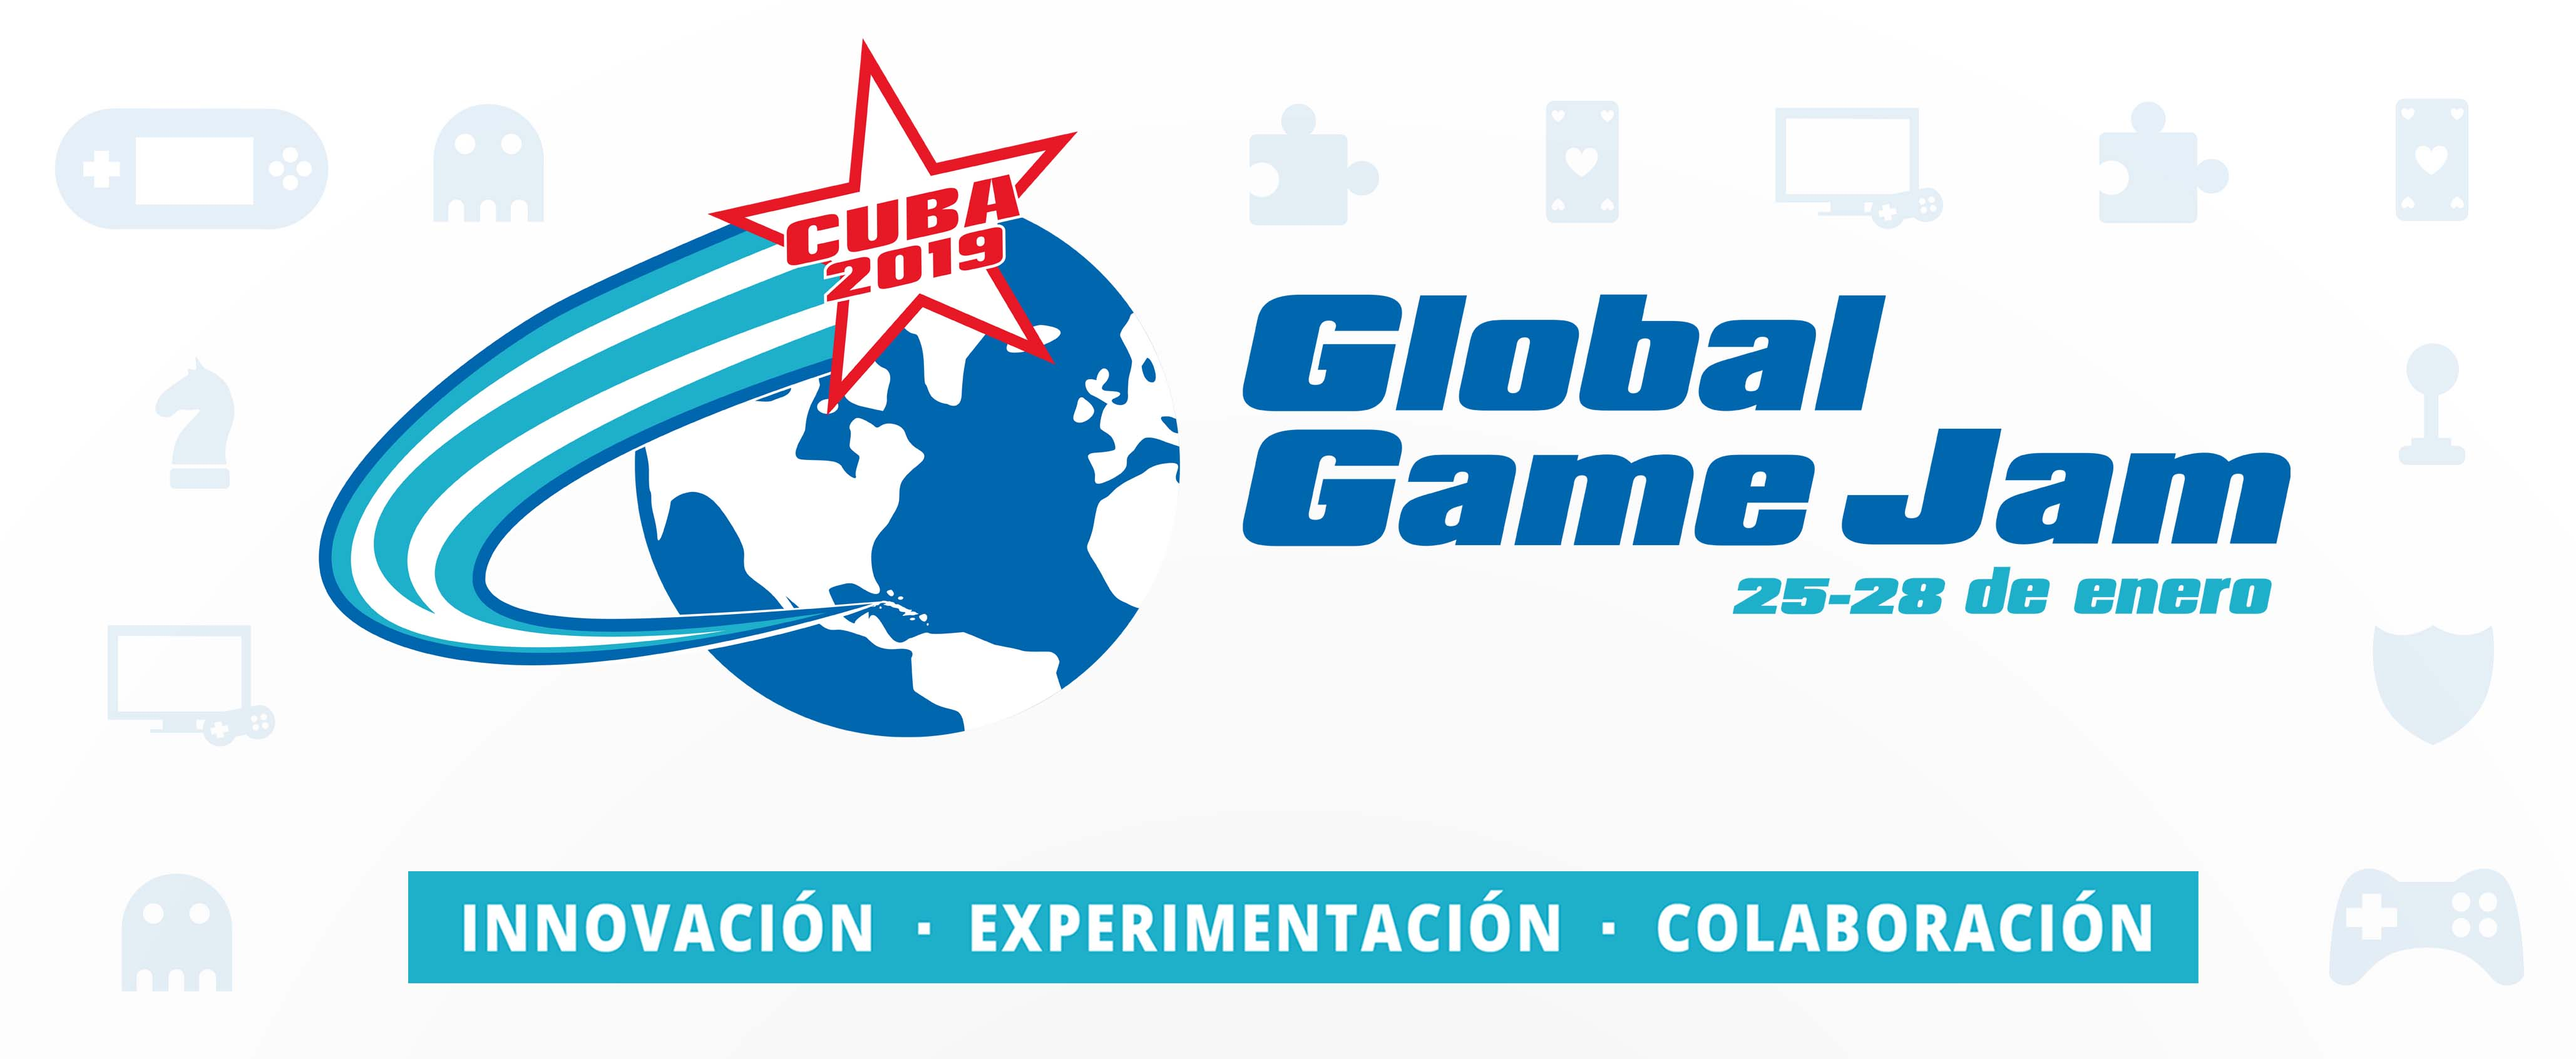 Create your game in 48h on the Global Game Jam 2019